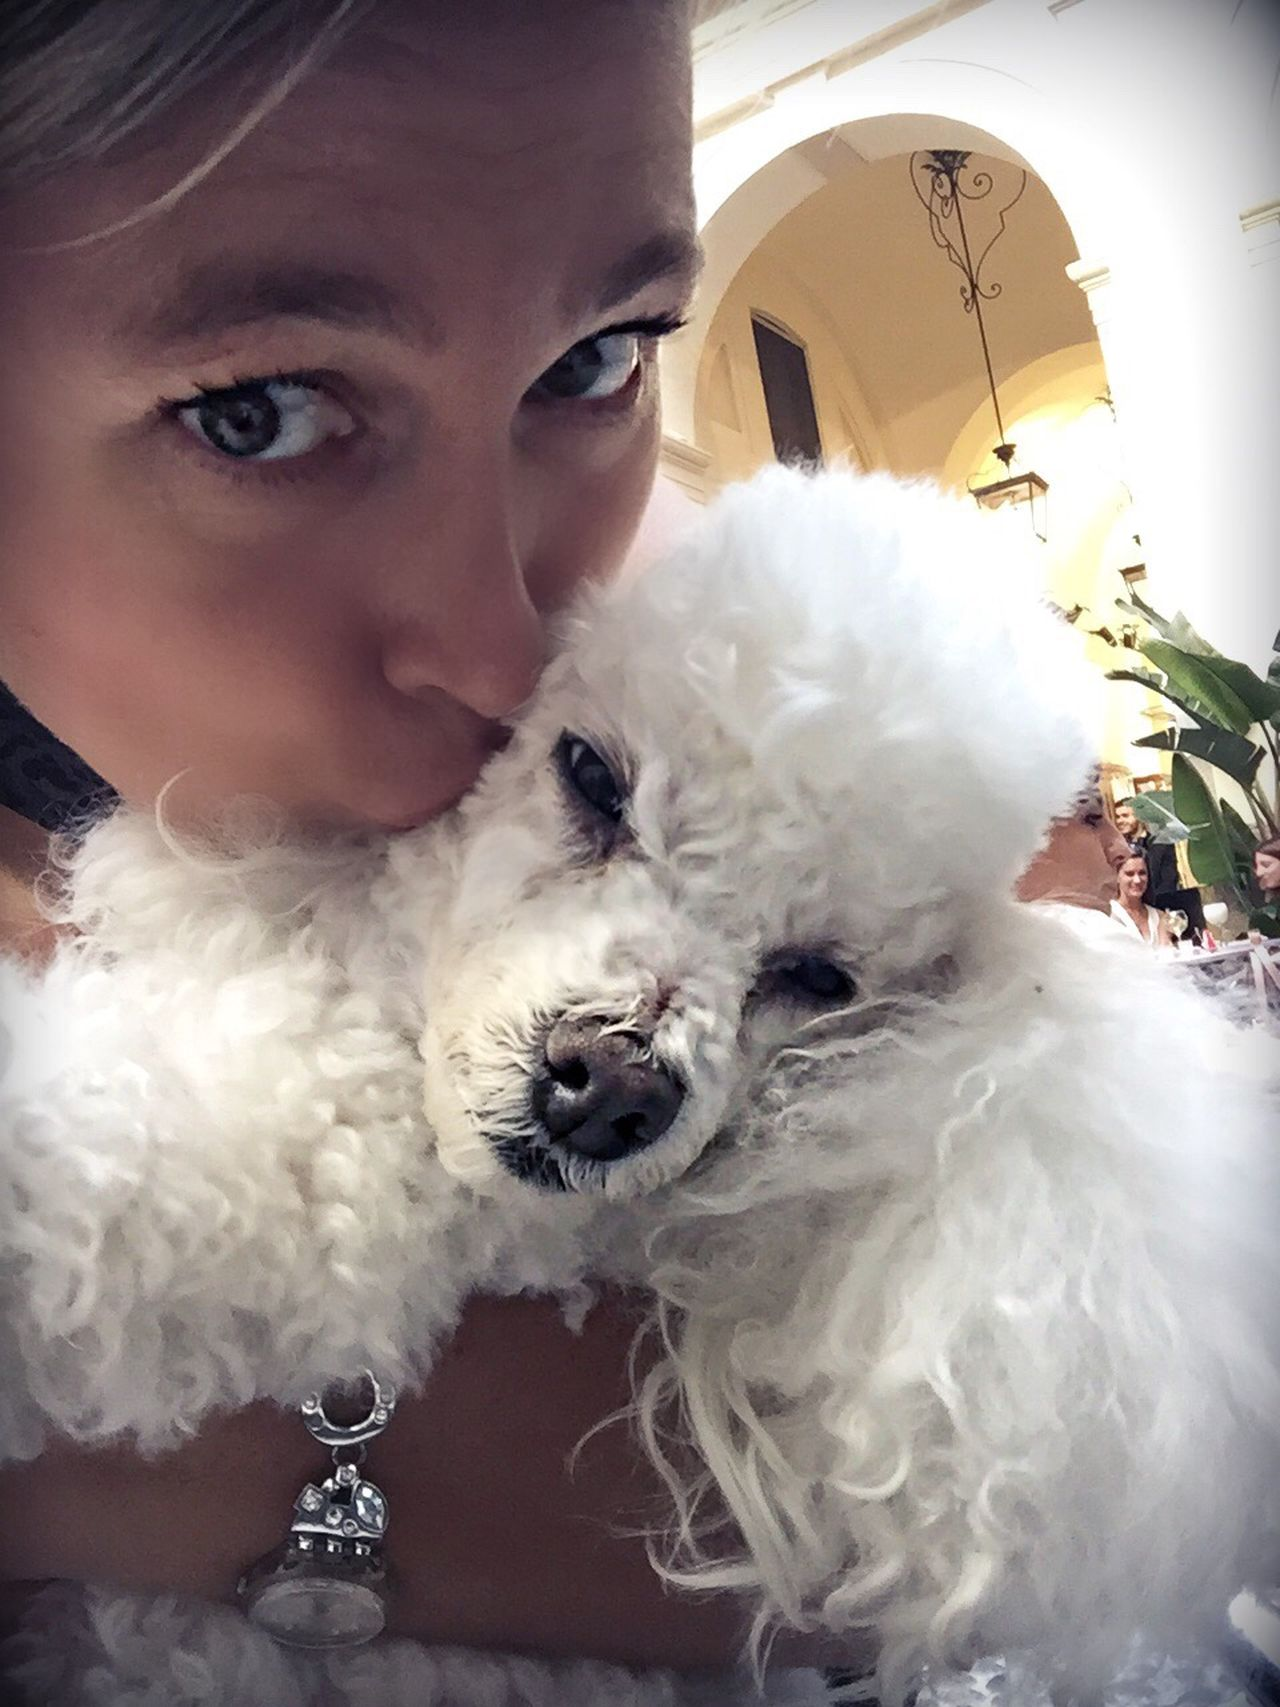 Love Poodle Poodle Love Poodletoy Poodlemania Portrait Women Kiss Hug Lifestyles Pet Poodlemix Dog One Animal Togetherness Pet Owner White Color Friendship Loyalty Leisure Activity Canine